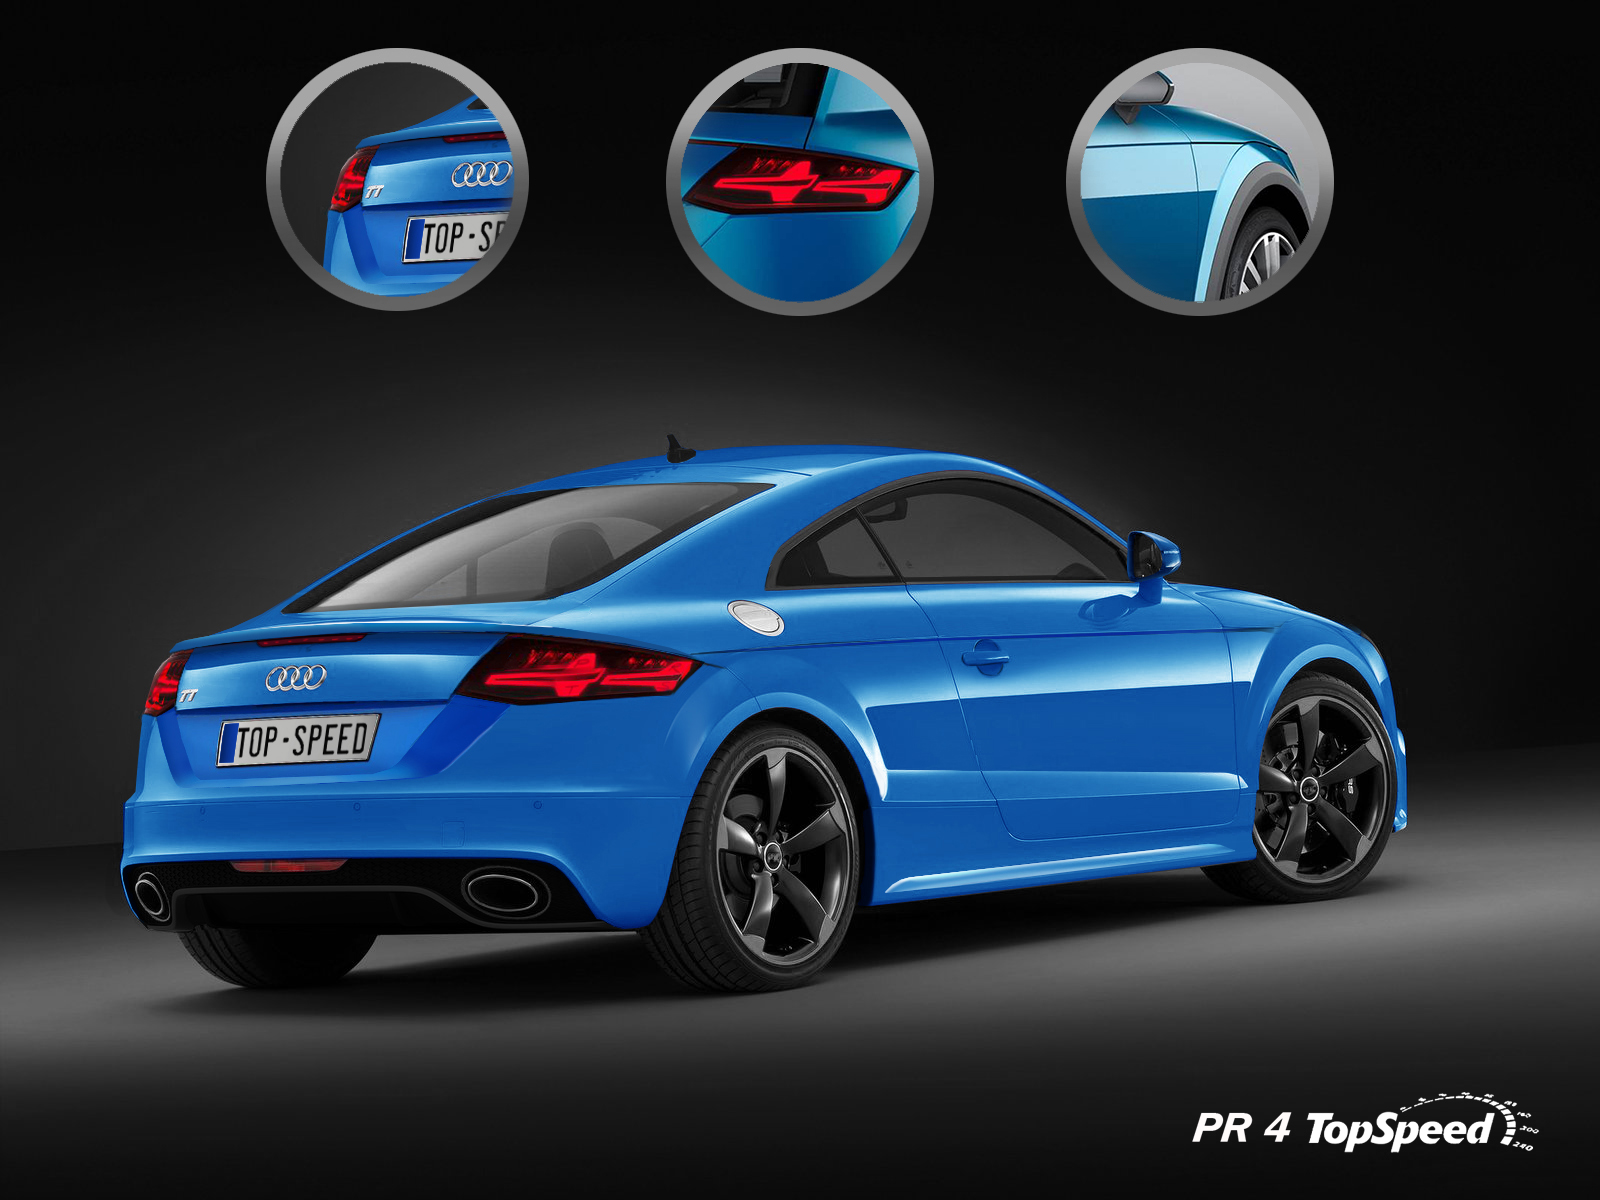 2016 - 2018 Audi TT | Top Speed